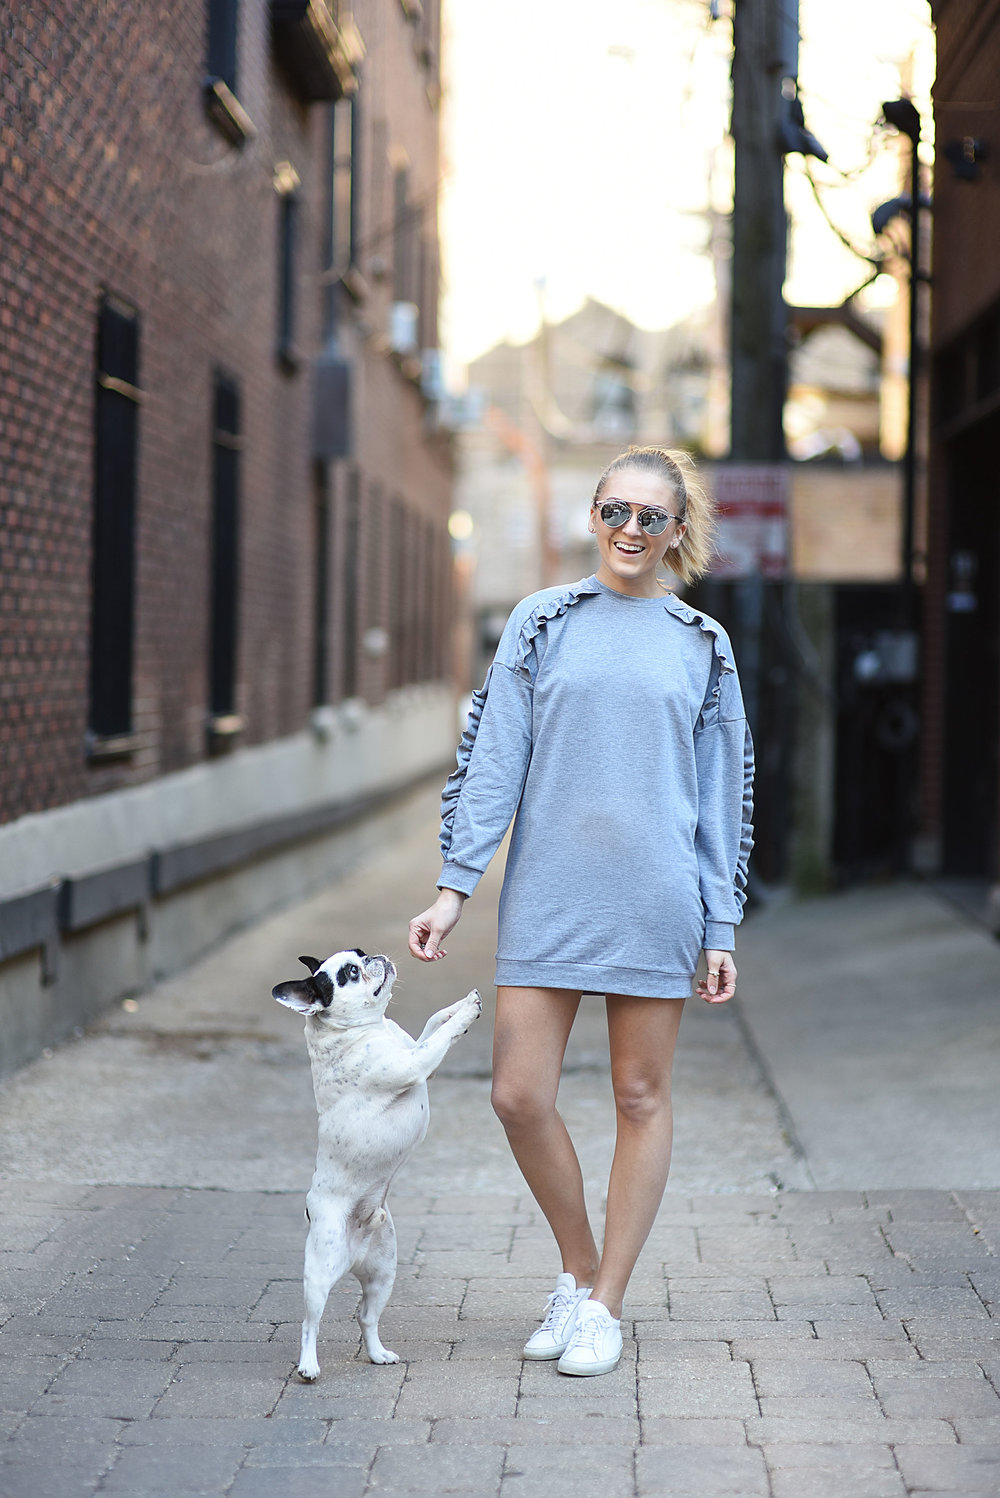 french-bulldog-and-girl